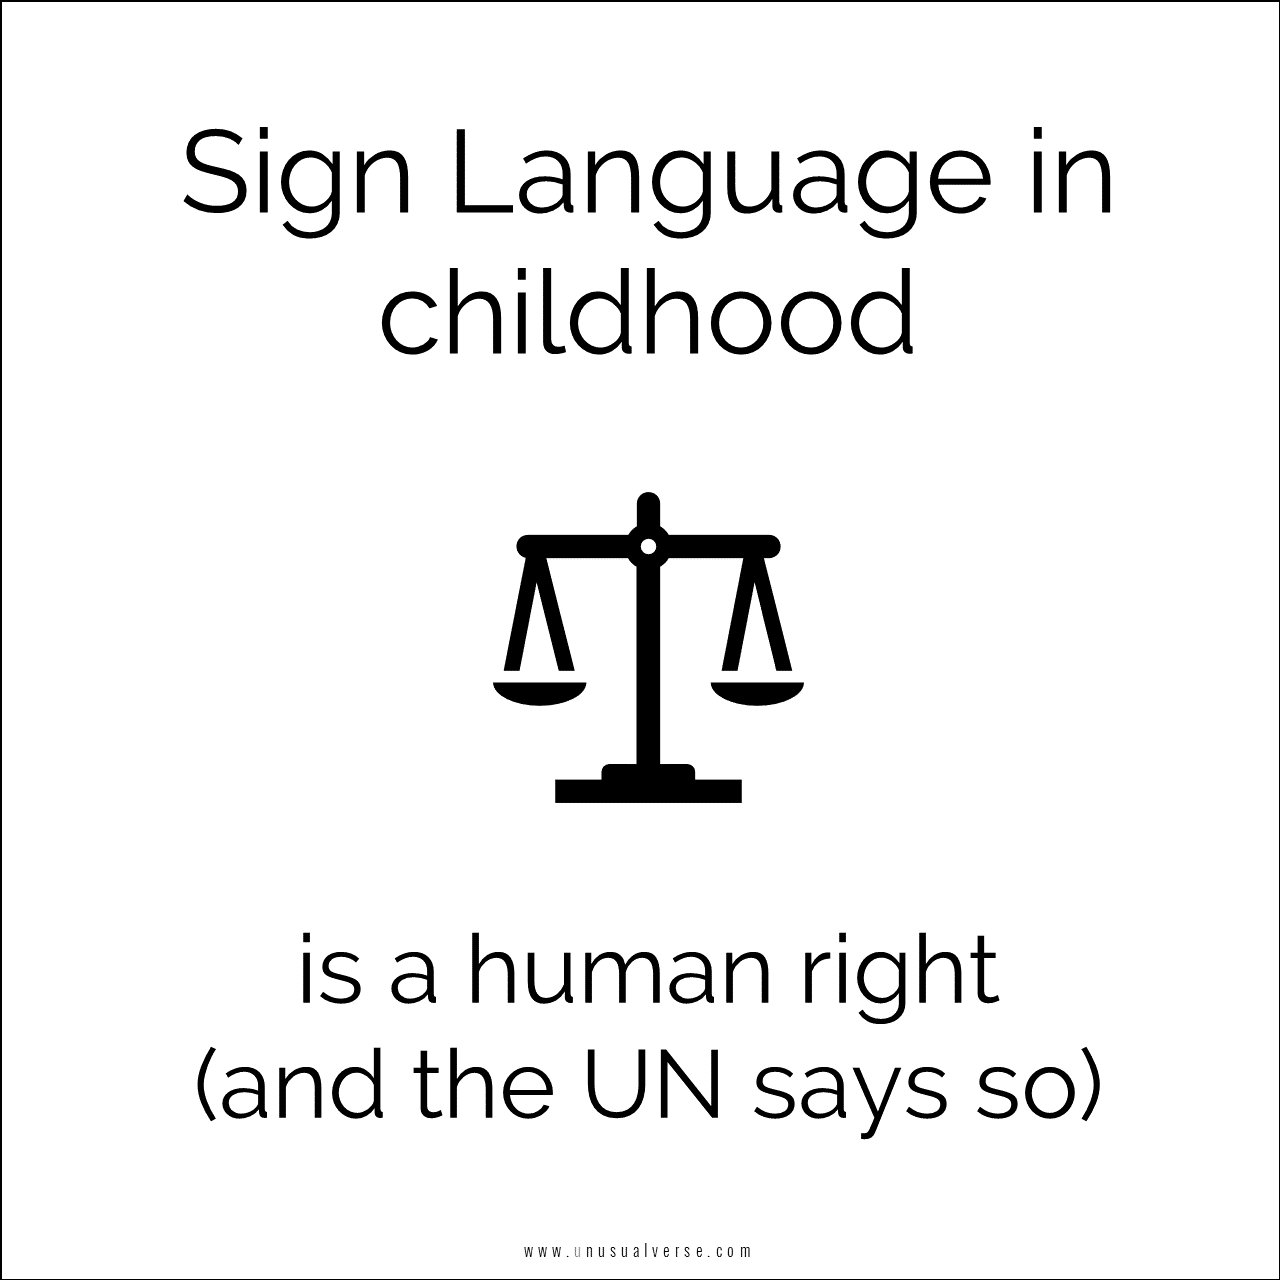 Sign Language in childhood is a human right (and the UN says so)